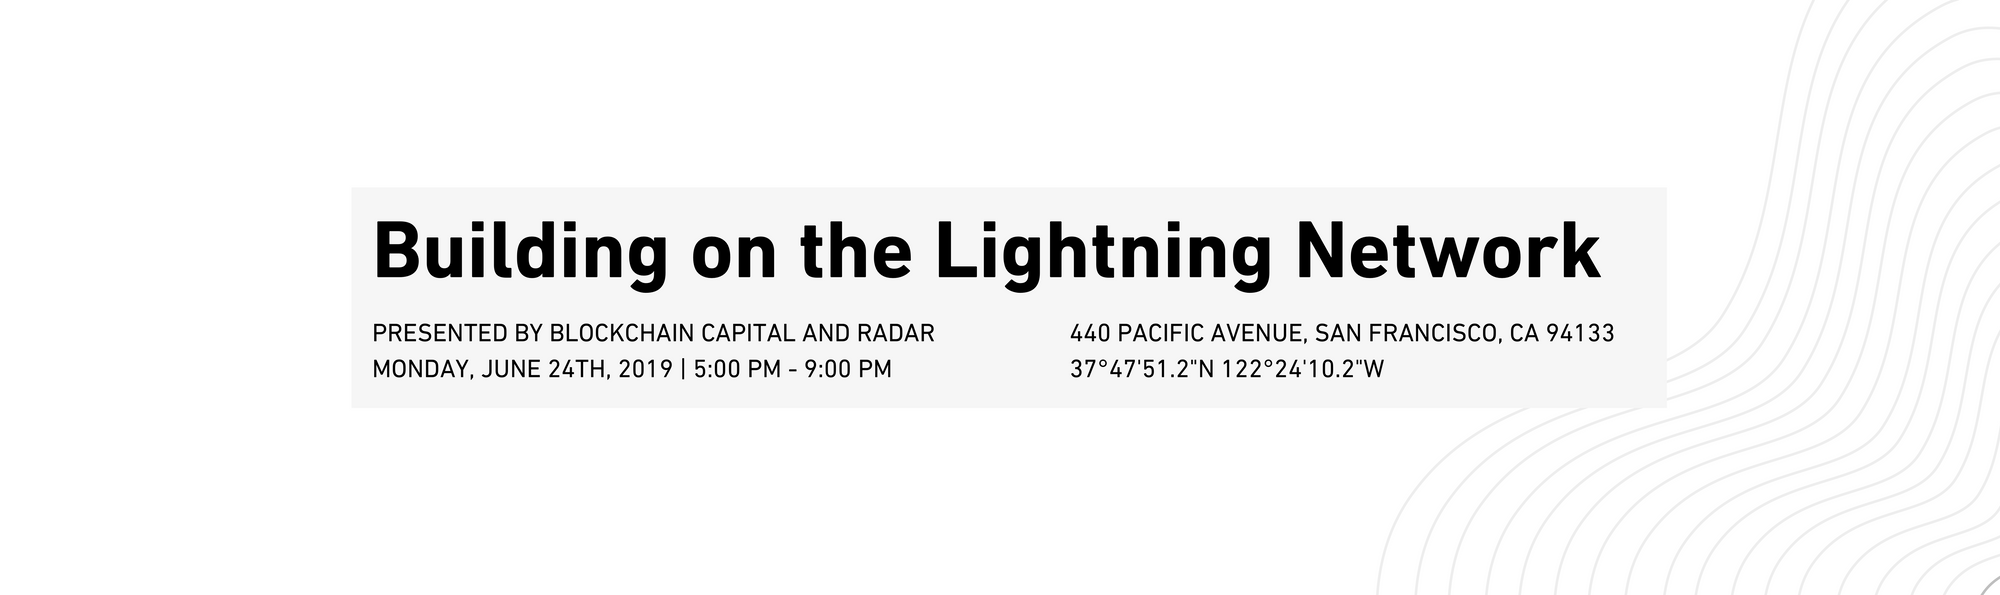 Building on the Lightning Network